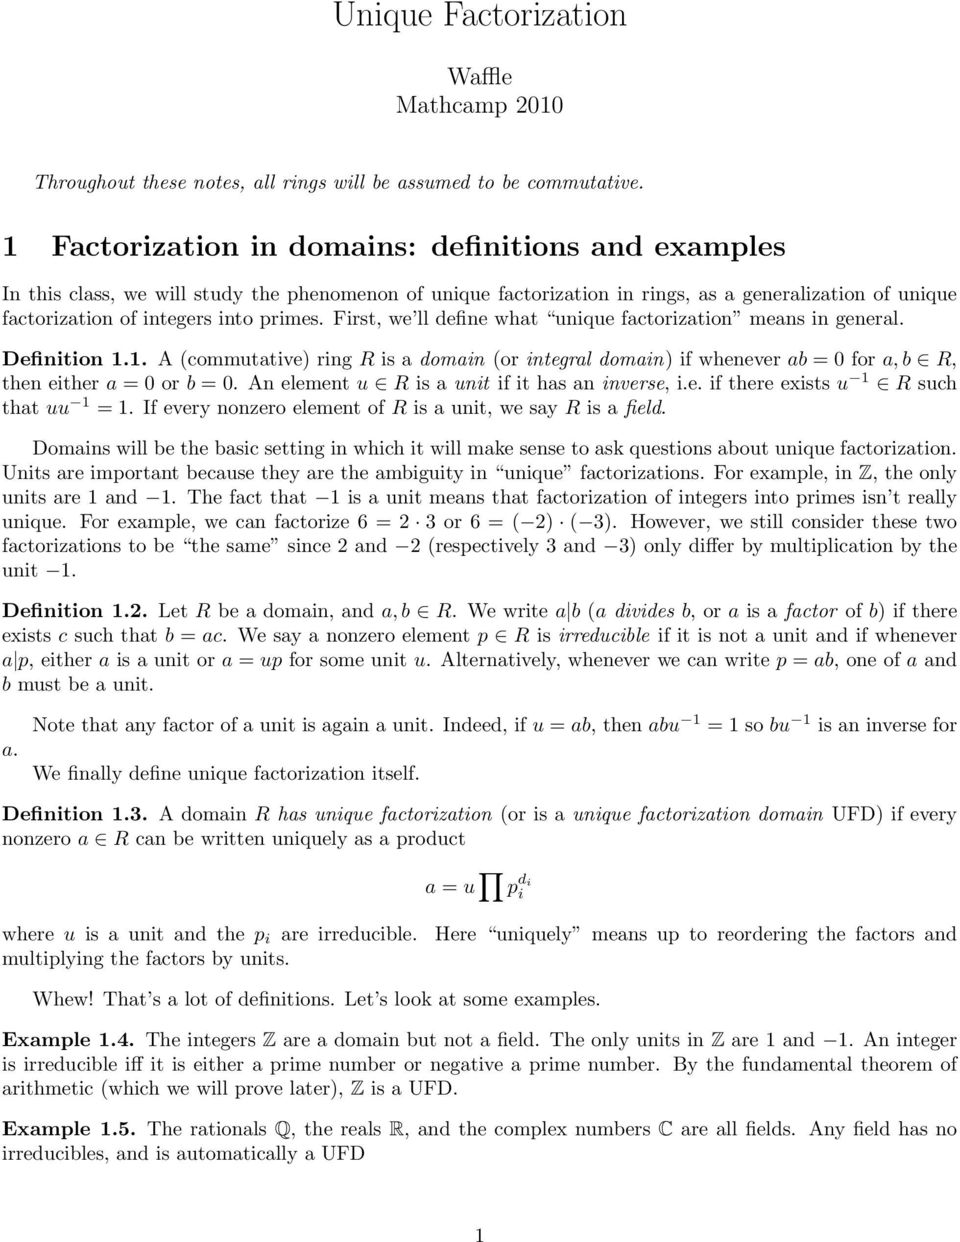 First, we ll define what unique factorization means in general. Definition 1.1. A (commutative) ring R is a domain (or integral domain) if whenever ab = 0 for a, b R, then either a = 0 or b = 0.